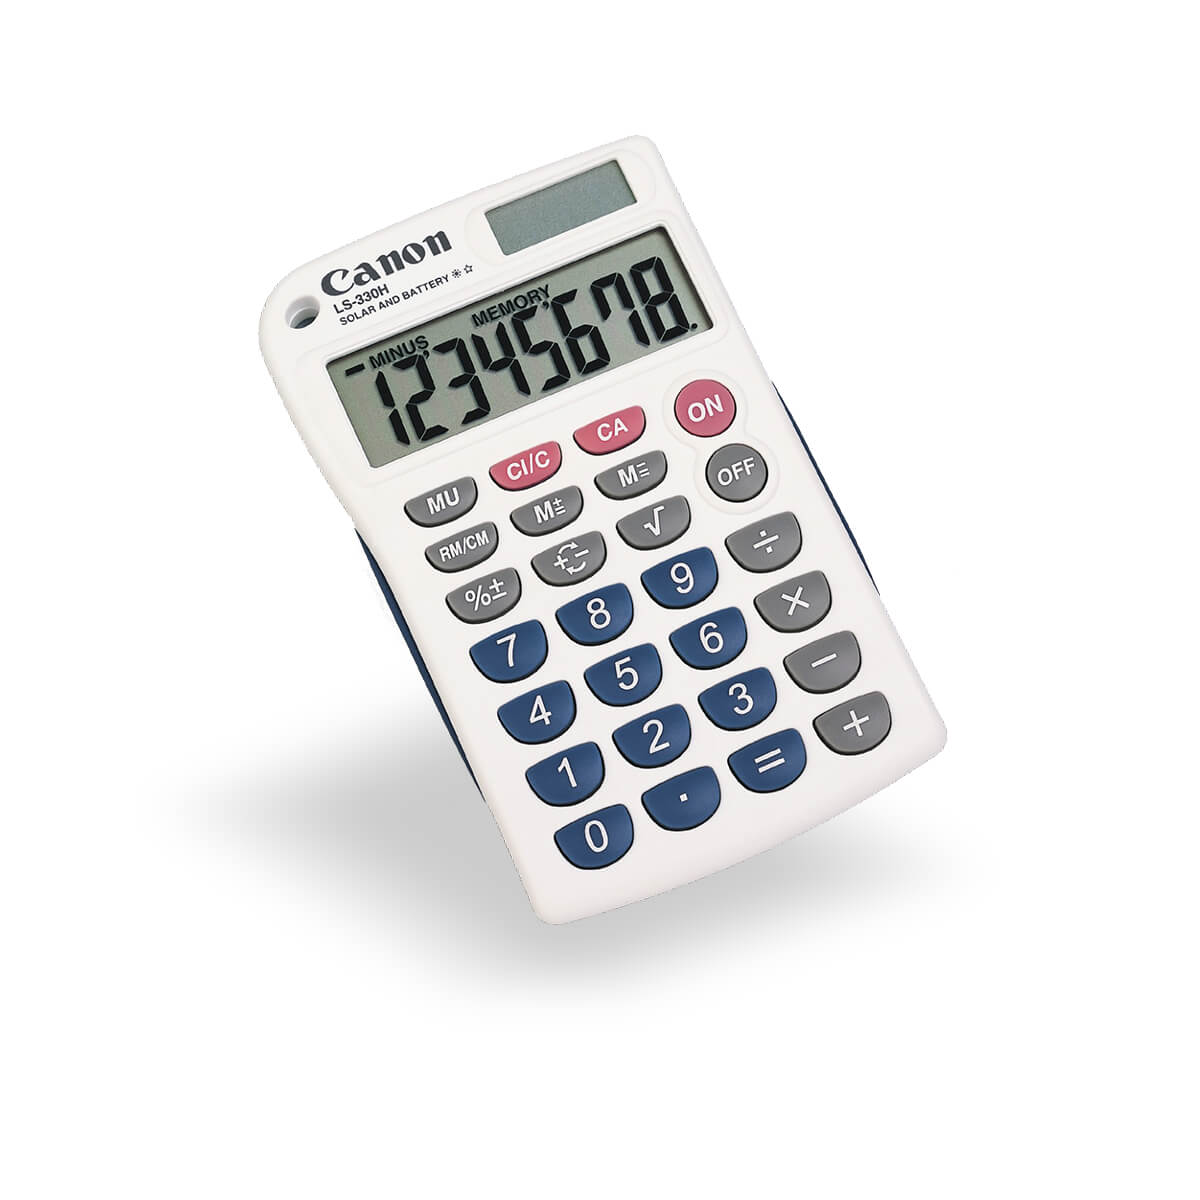 Canon LS-330H lightweight pocket calculator